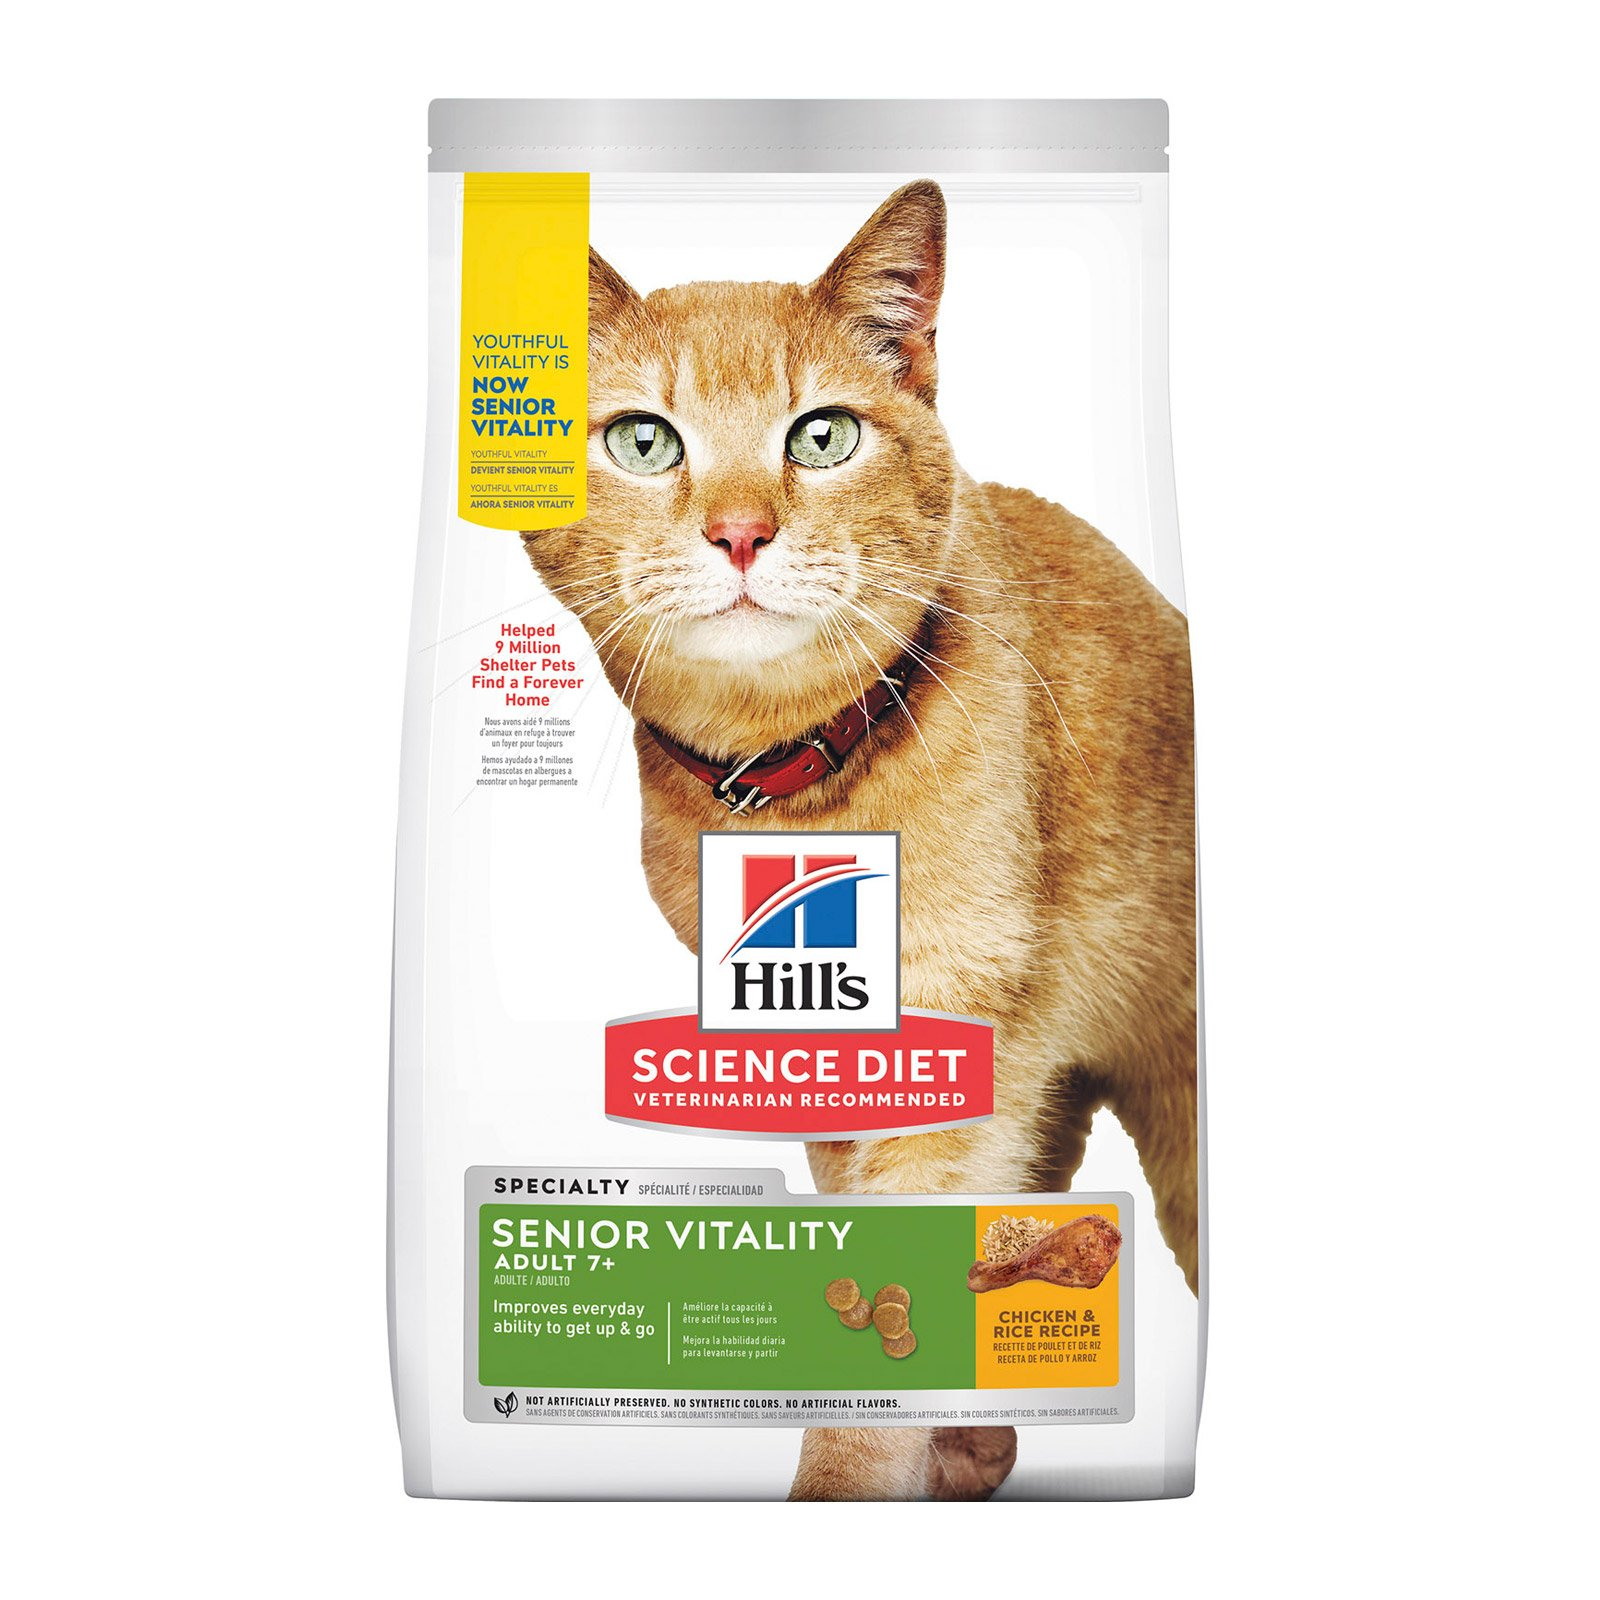 Hill's Science Diet Adult 7+ Youthful Vitality Chicken & Rice Senior Dry Cat Food